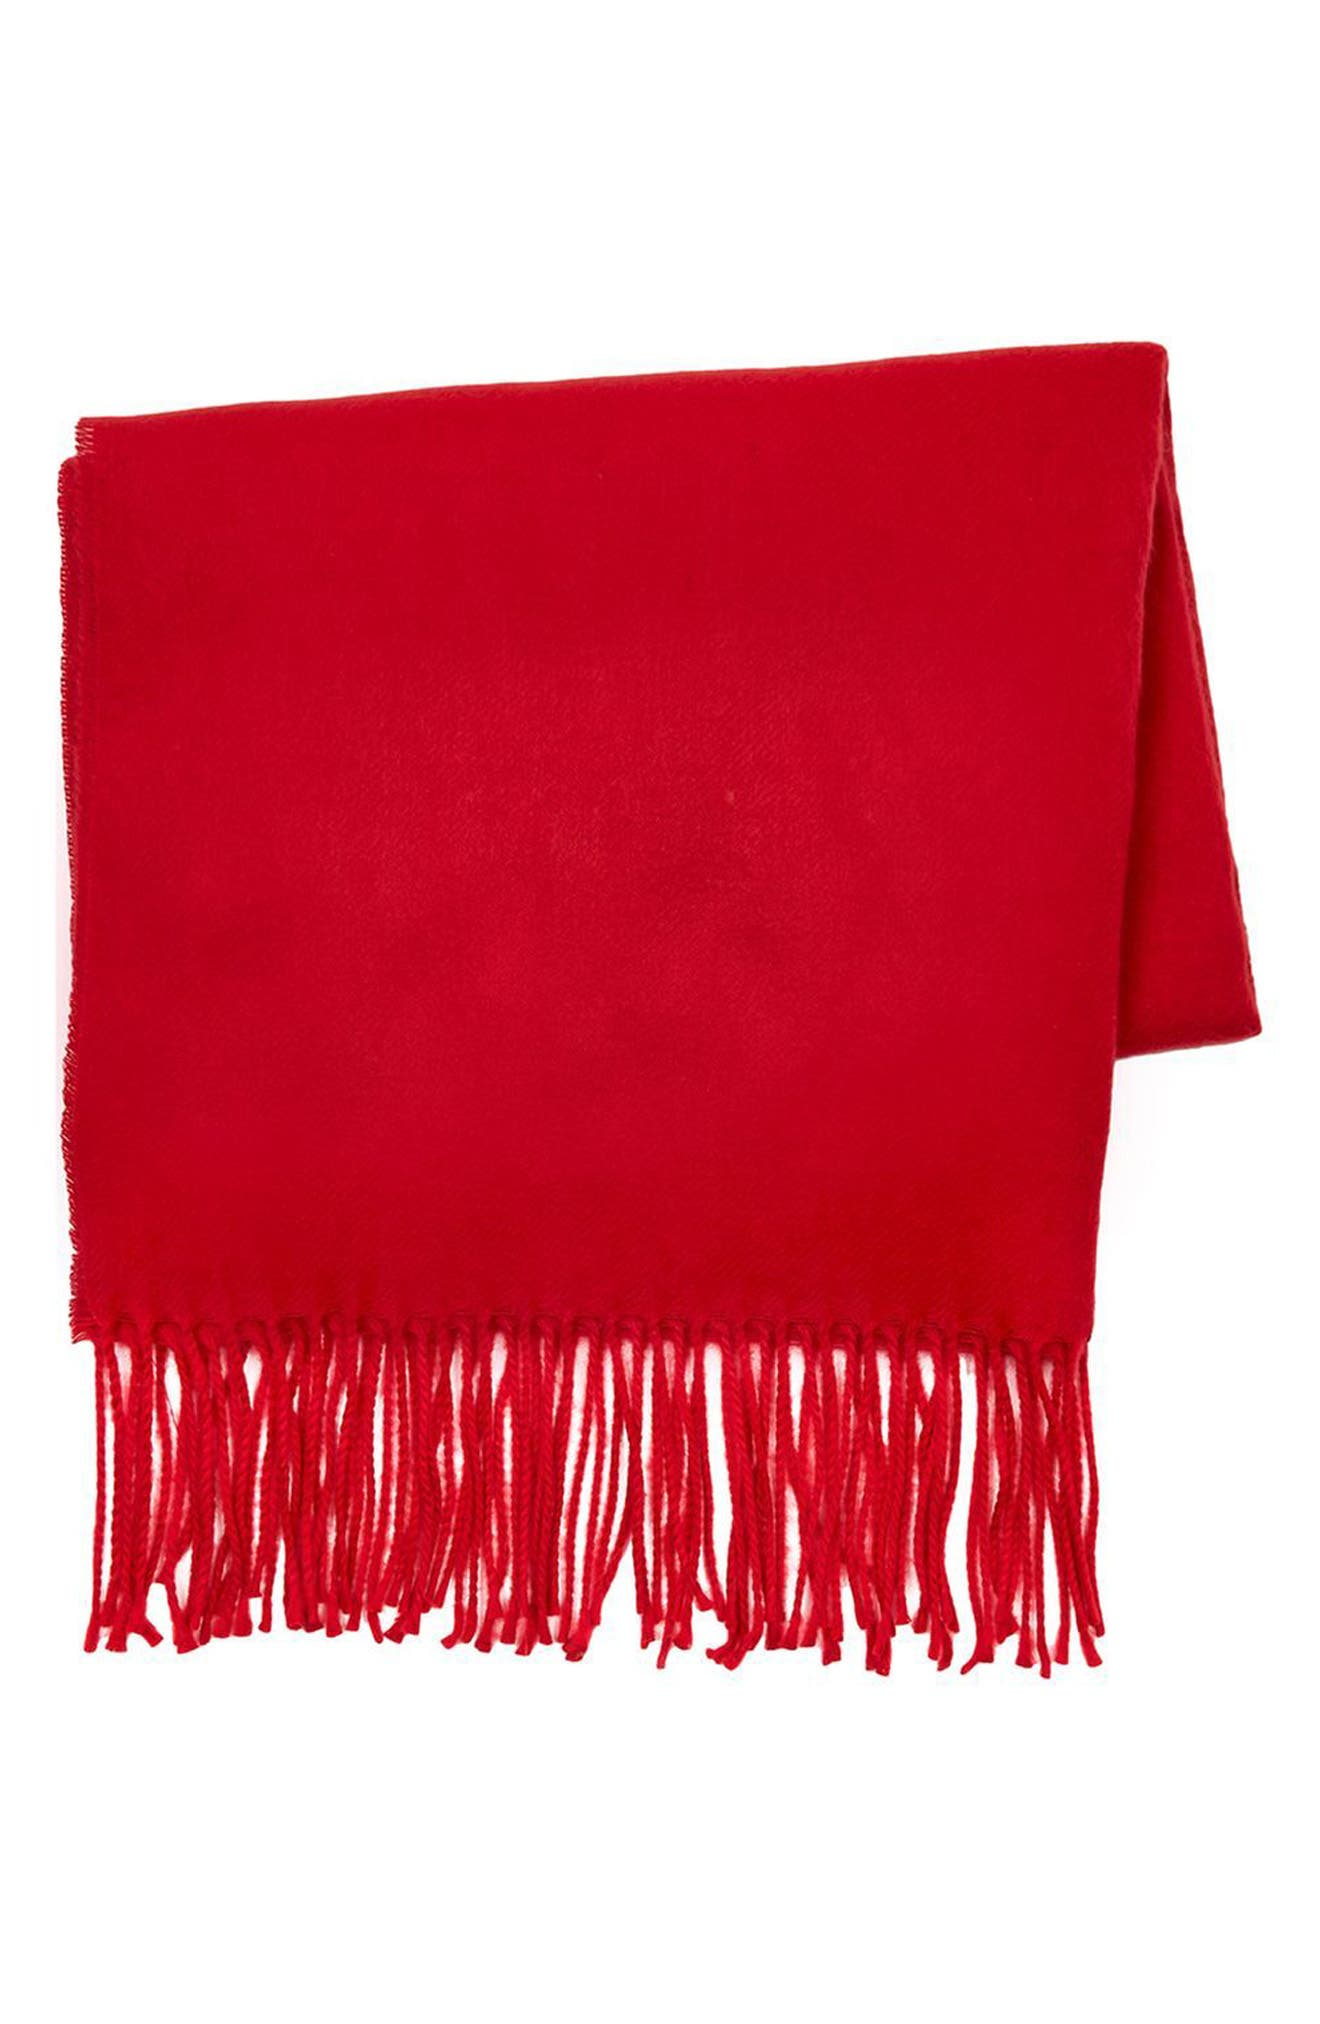 Fargo Scarf,                             Alternate thumbnail 5, color,                             Red